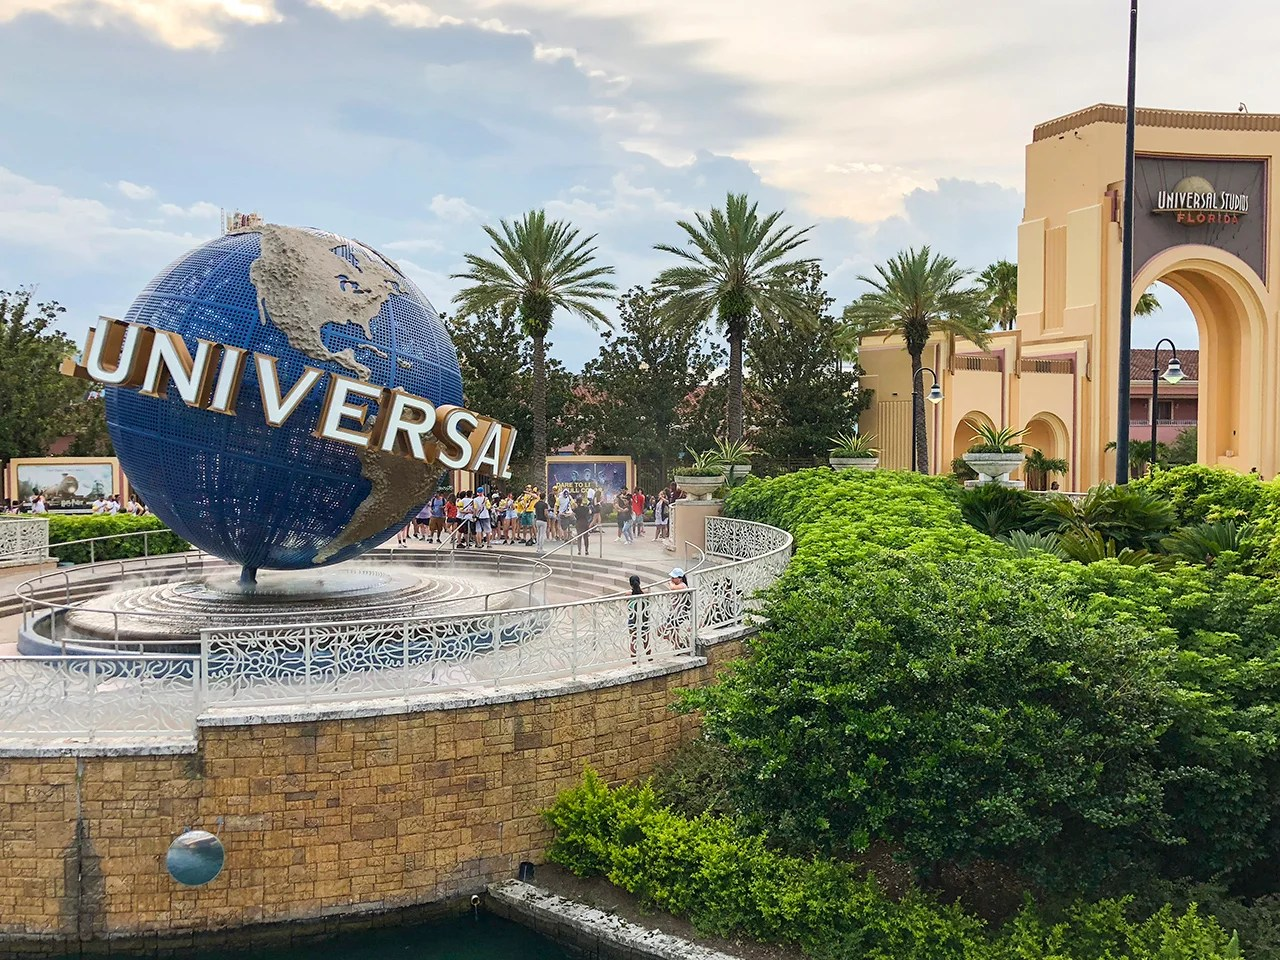 Keeping Up With The Mouse: Is Universal Studios Florida Opening a New Theme Park?